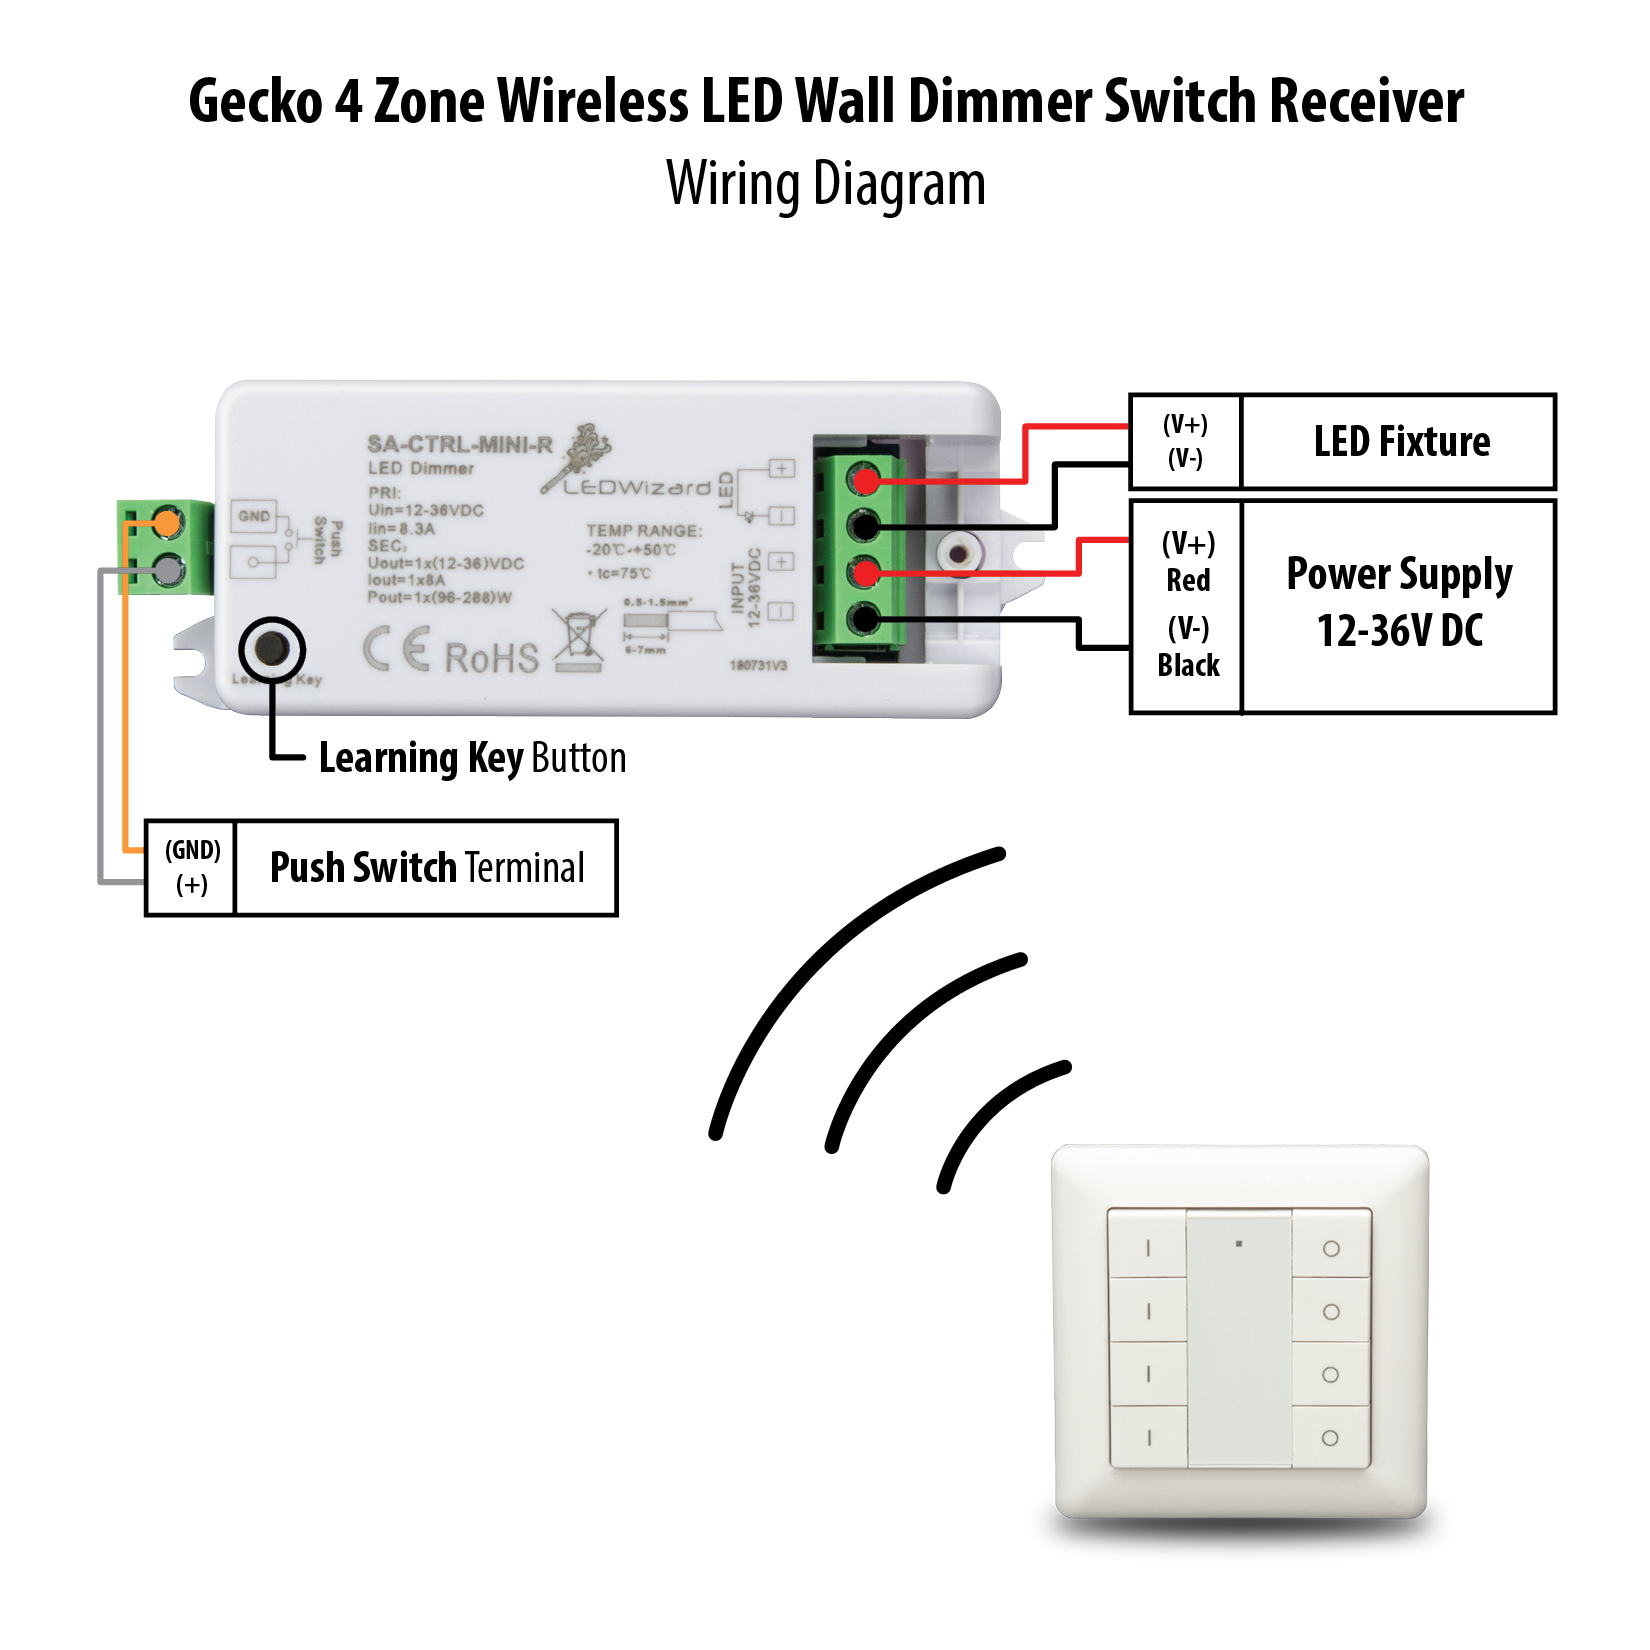 Gecko Wireless 4 Zone Led Wall Dimmer Switch Diagram Customers Questions And Answers